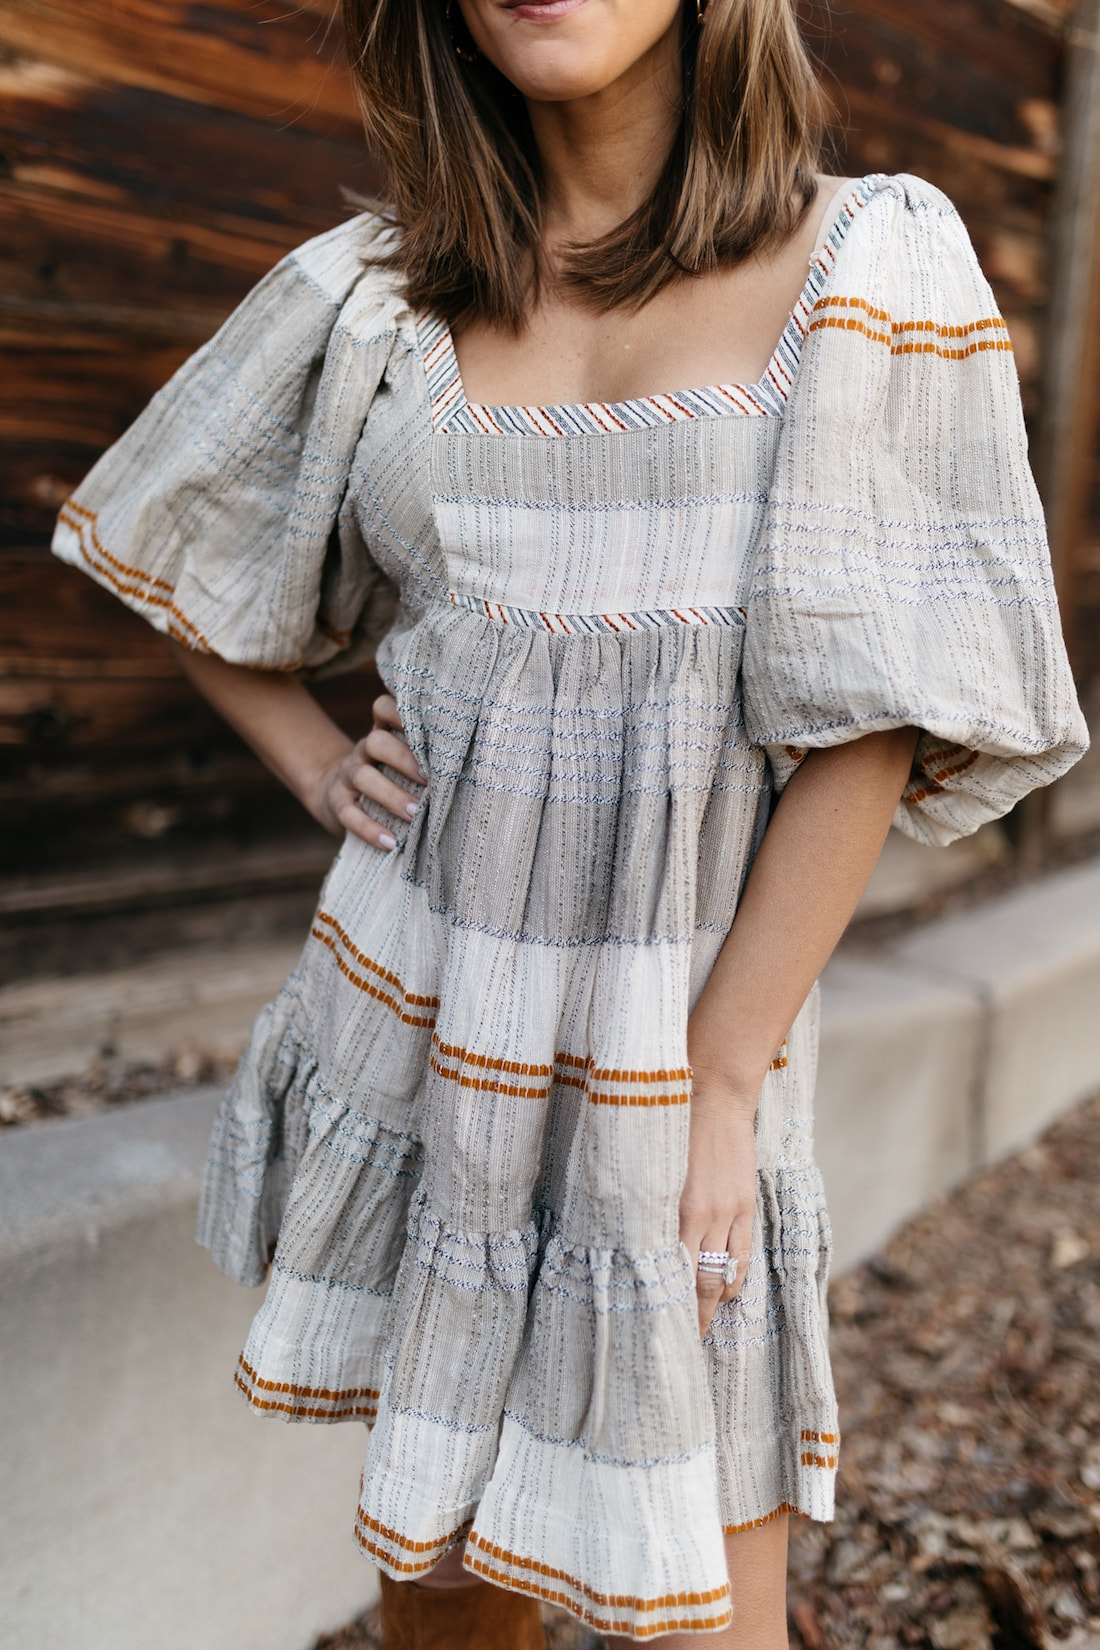 brighton keller wearing free people spring dress puff sleeves from verishop with tall boots